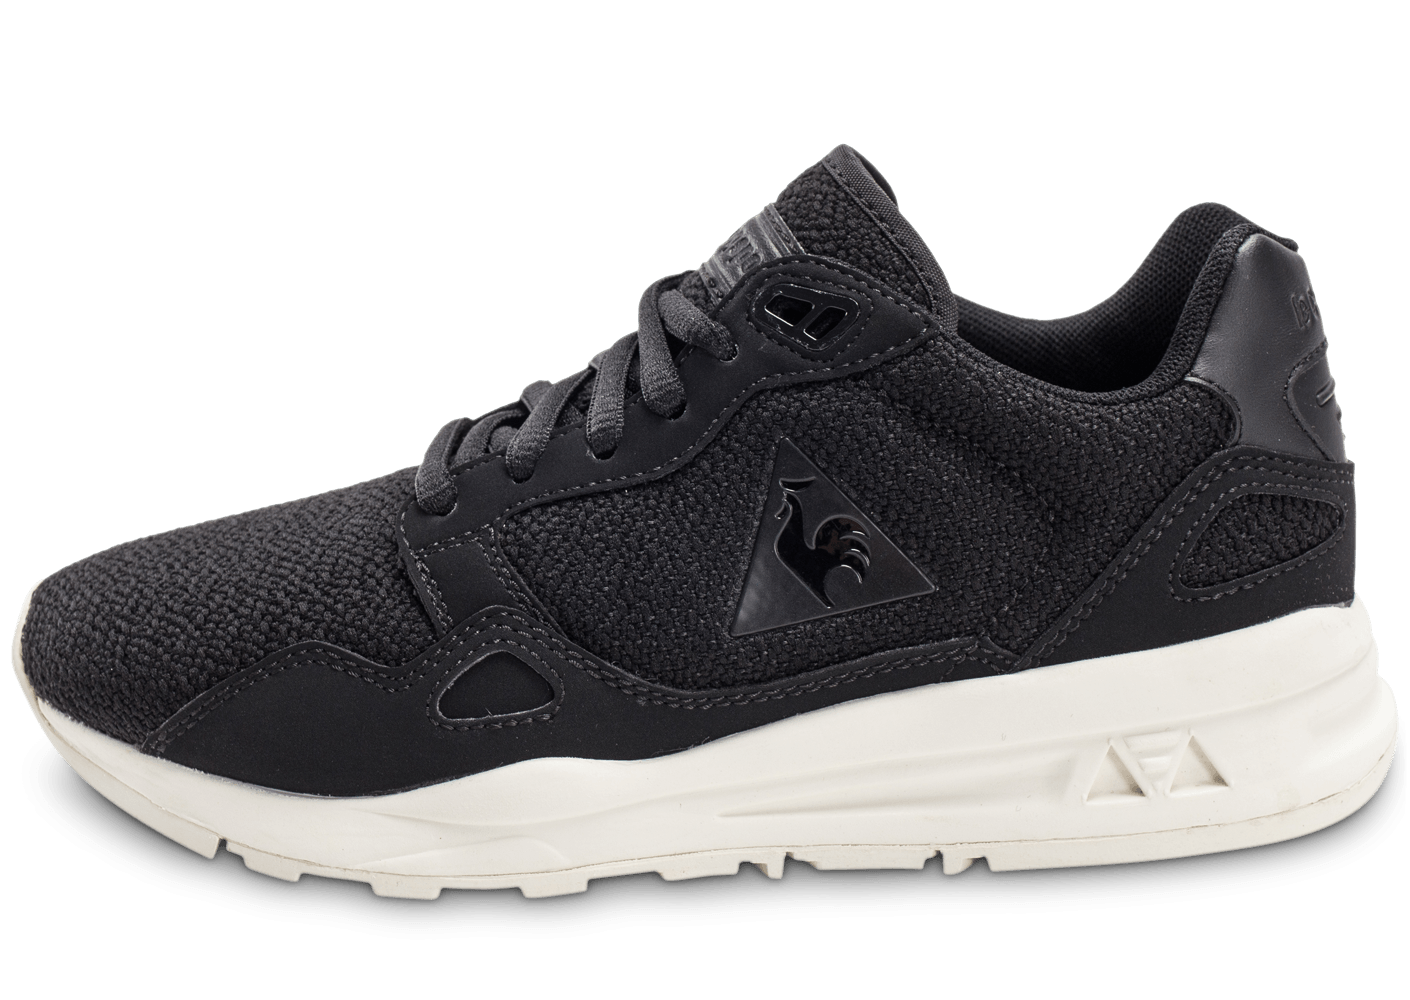 le coq sportif lcs r900 w wool mesh noire chaussures chaussures chausport. Black Bedroom Furniture Sets. Home Design Ideas